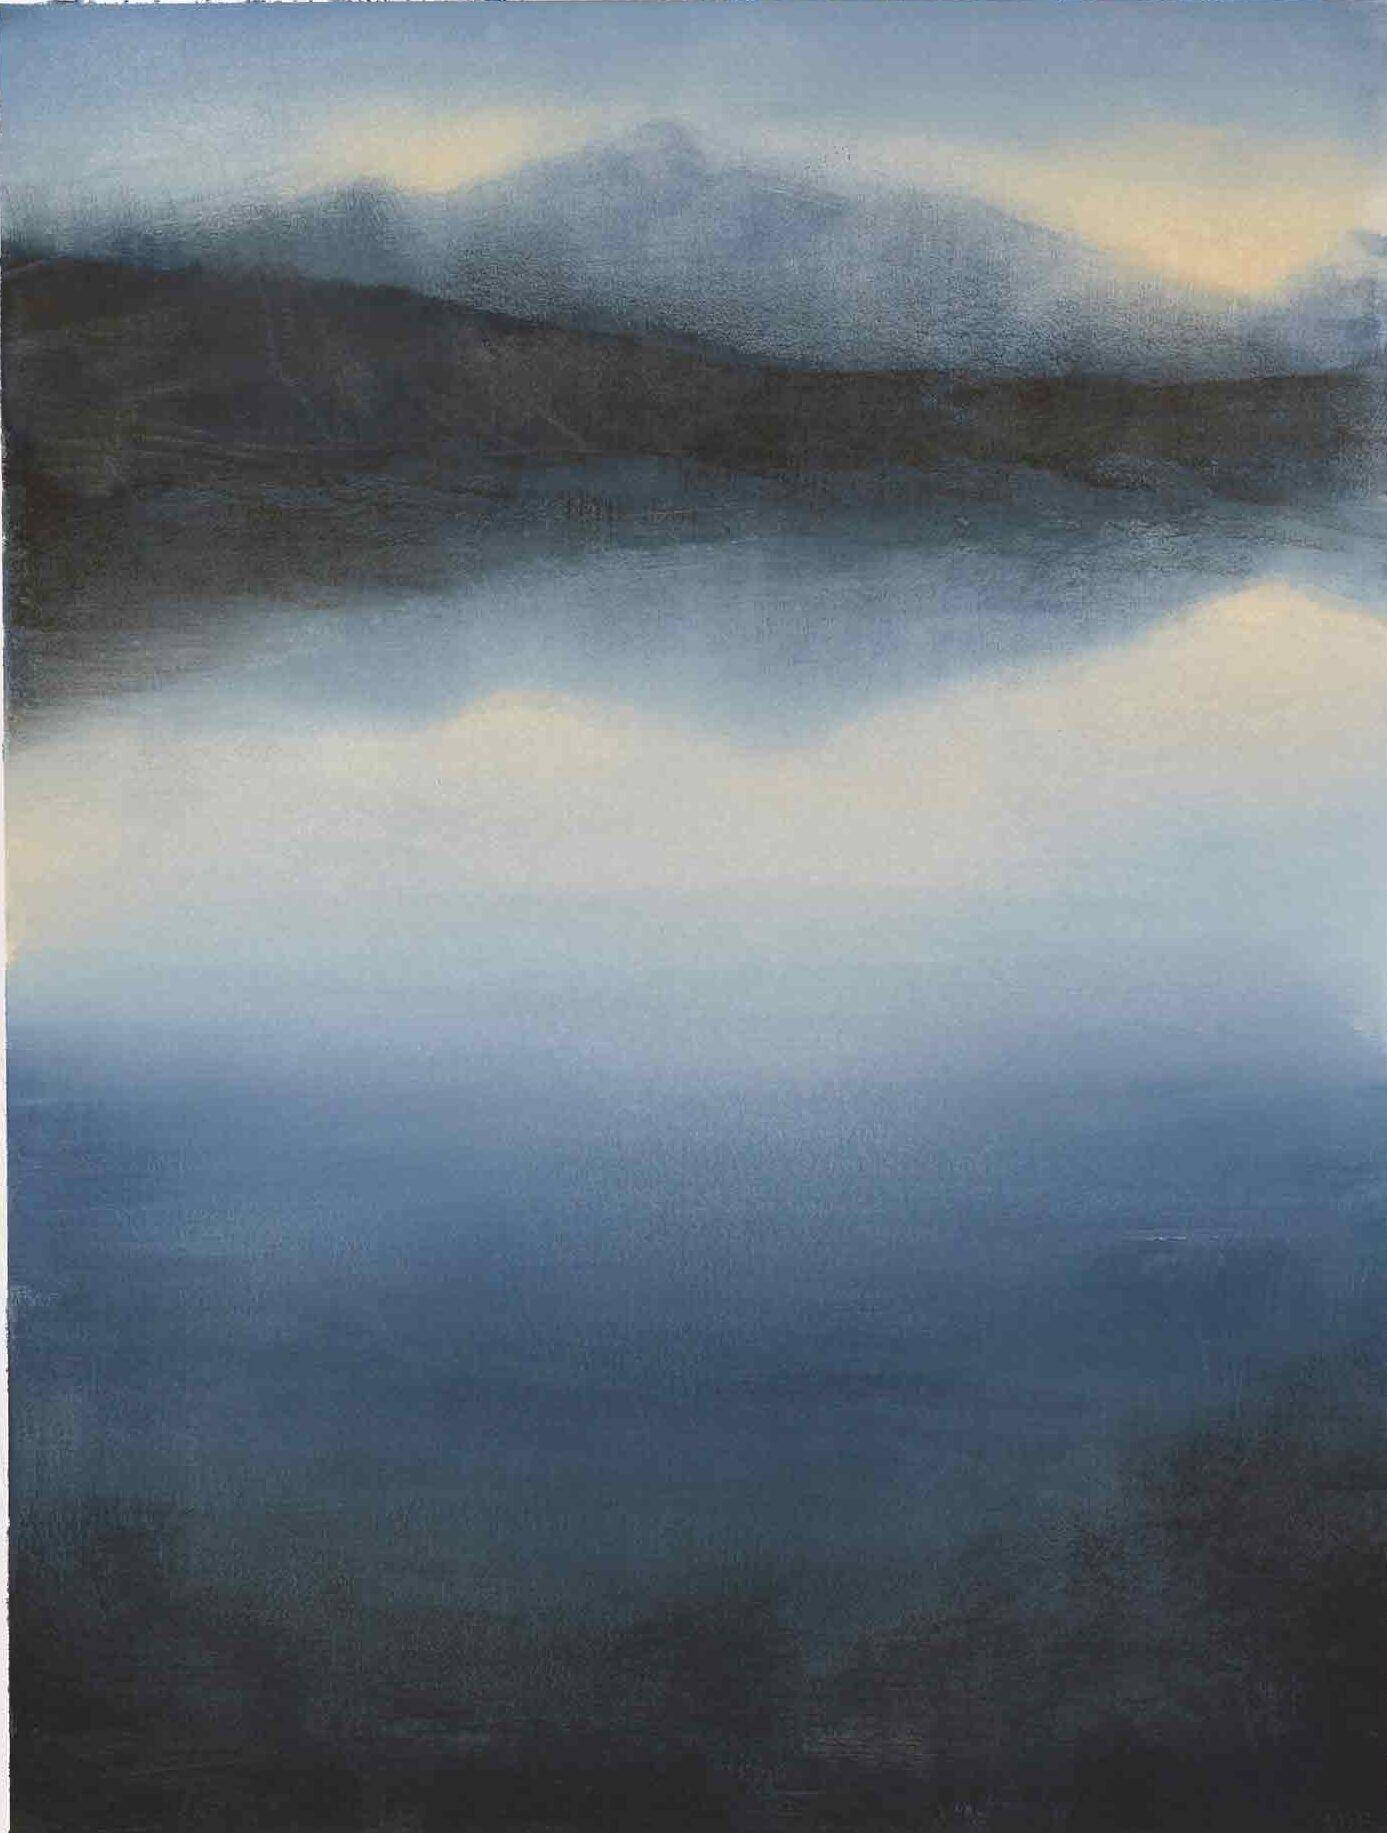 Sunrise Over Hecla On South Uist In The Outer Hebrides - Landscape Painting By Victoria Orr Ewing